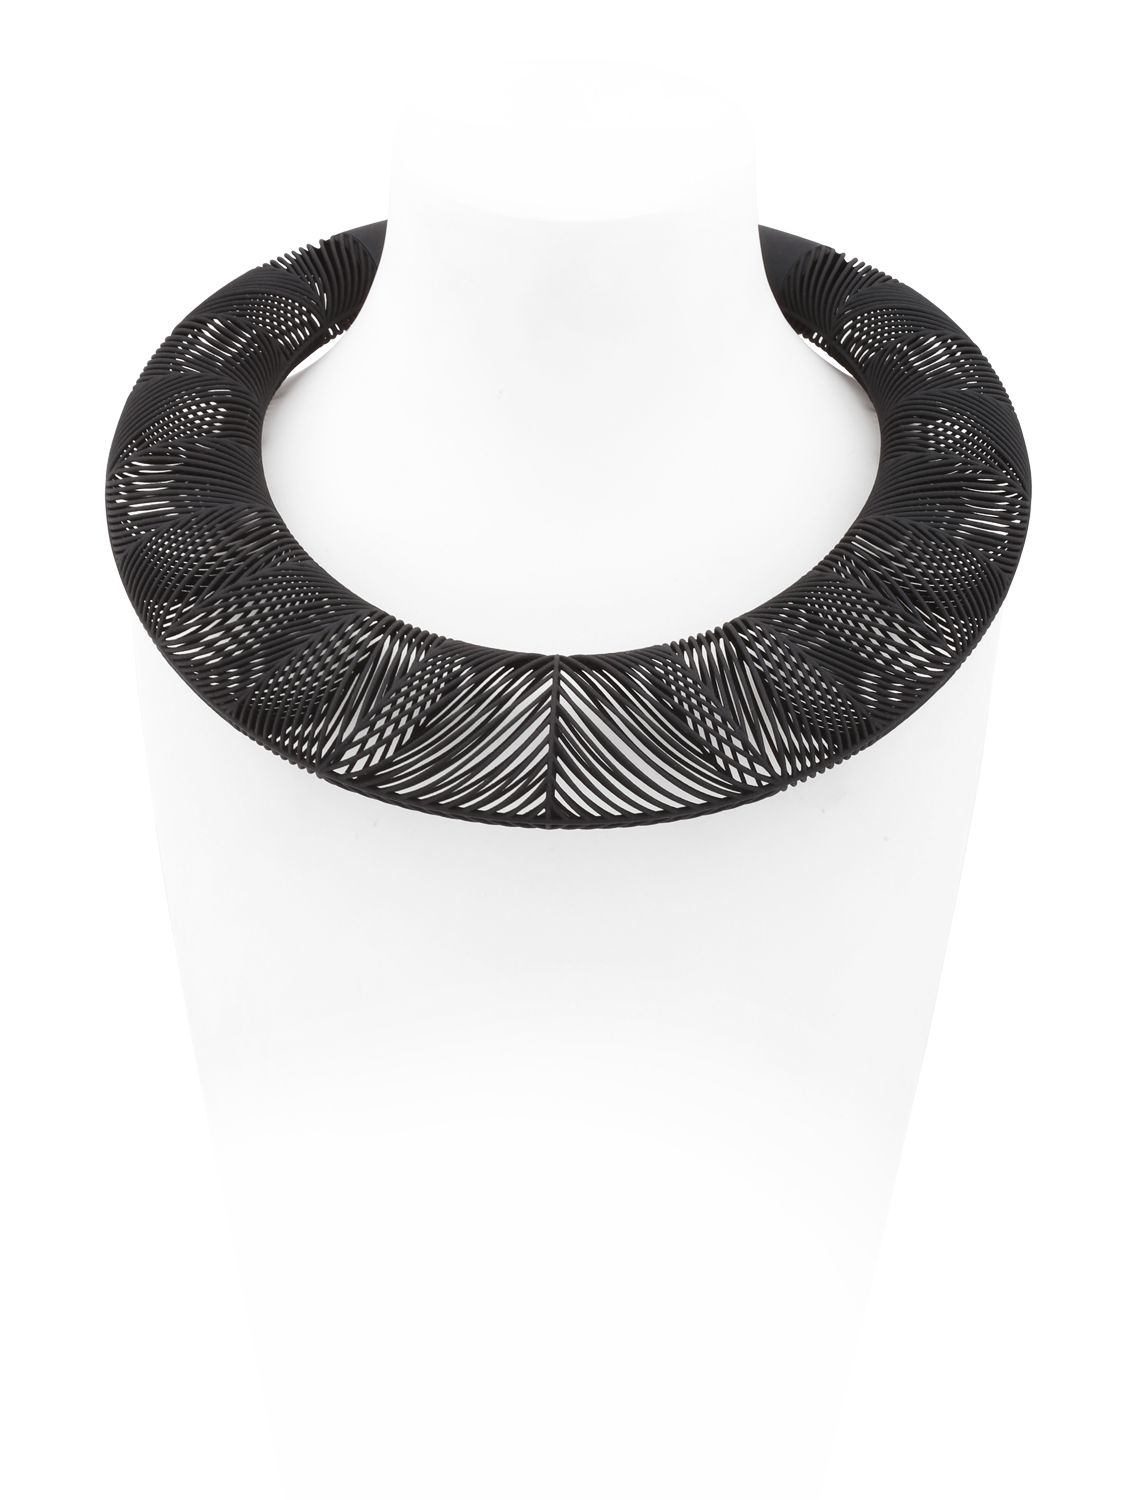 Vojd Studios Synthetic Chevron Giant Torque Necklace in Black